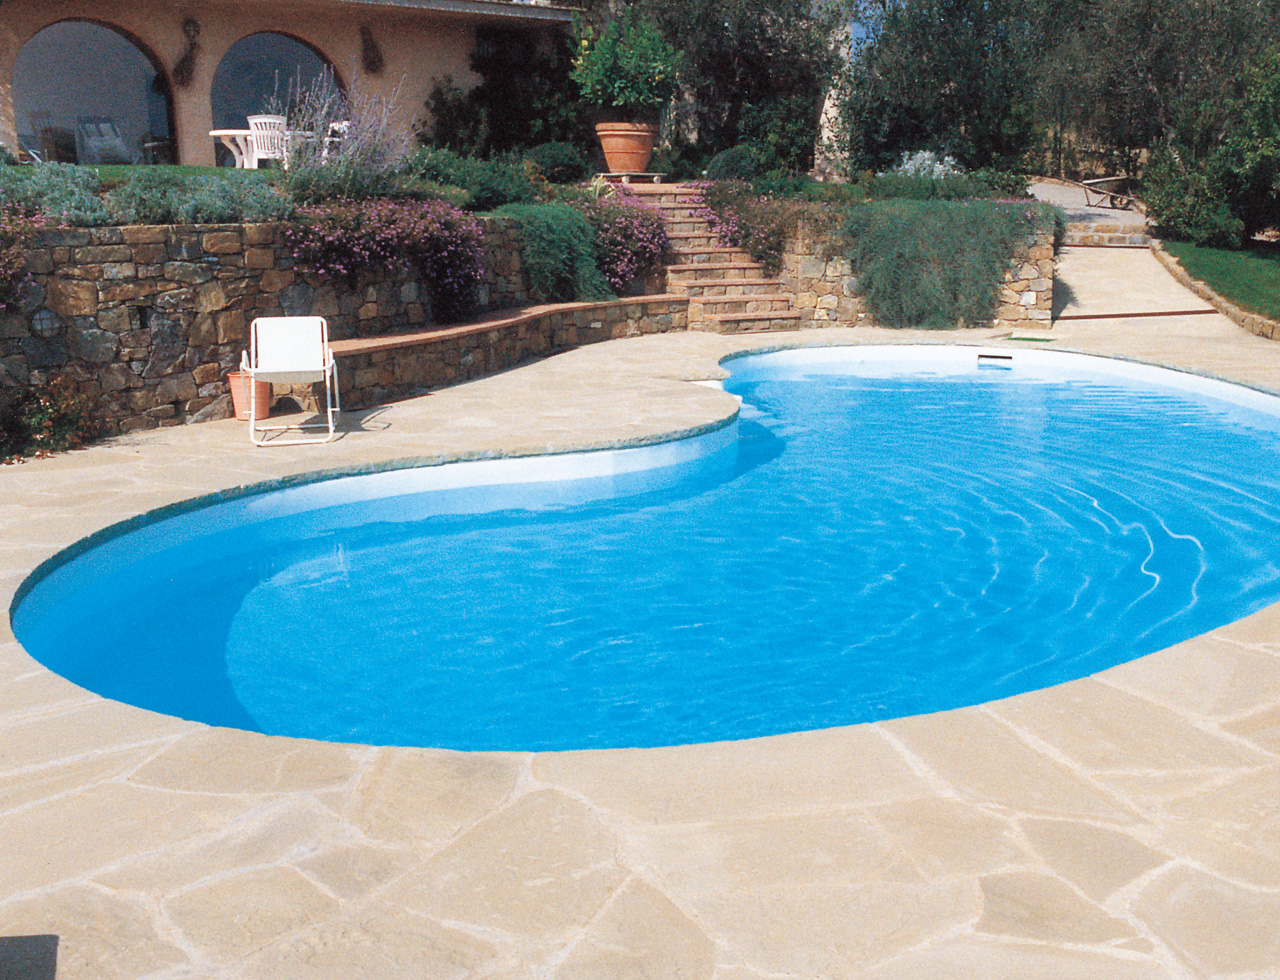 Pool Rund Oder Oval Pool Rund 3m Best Pool Rund M Poolset Komplett With Pool